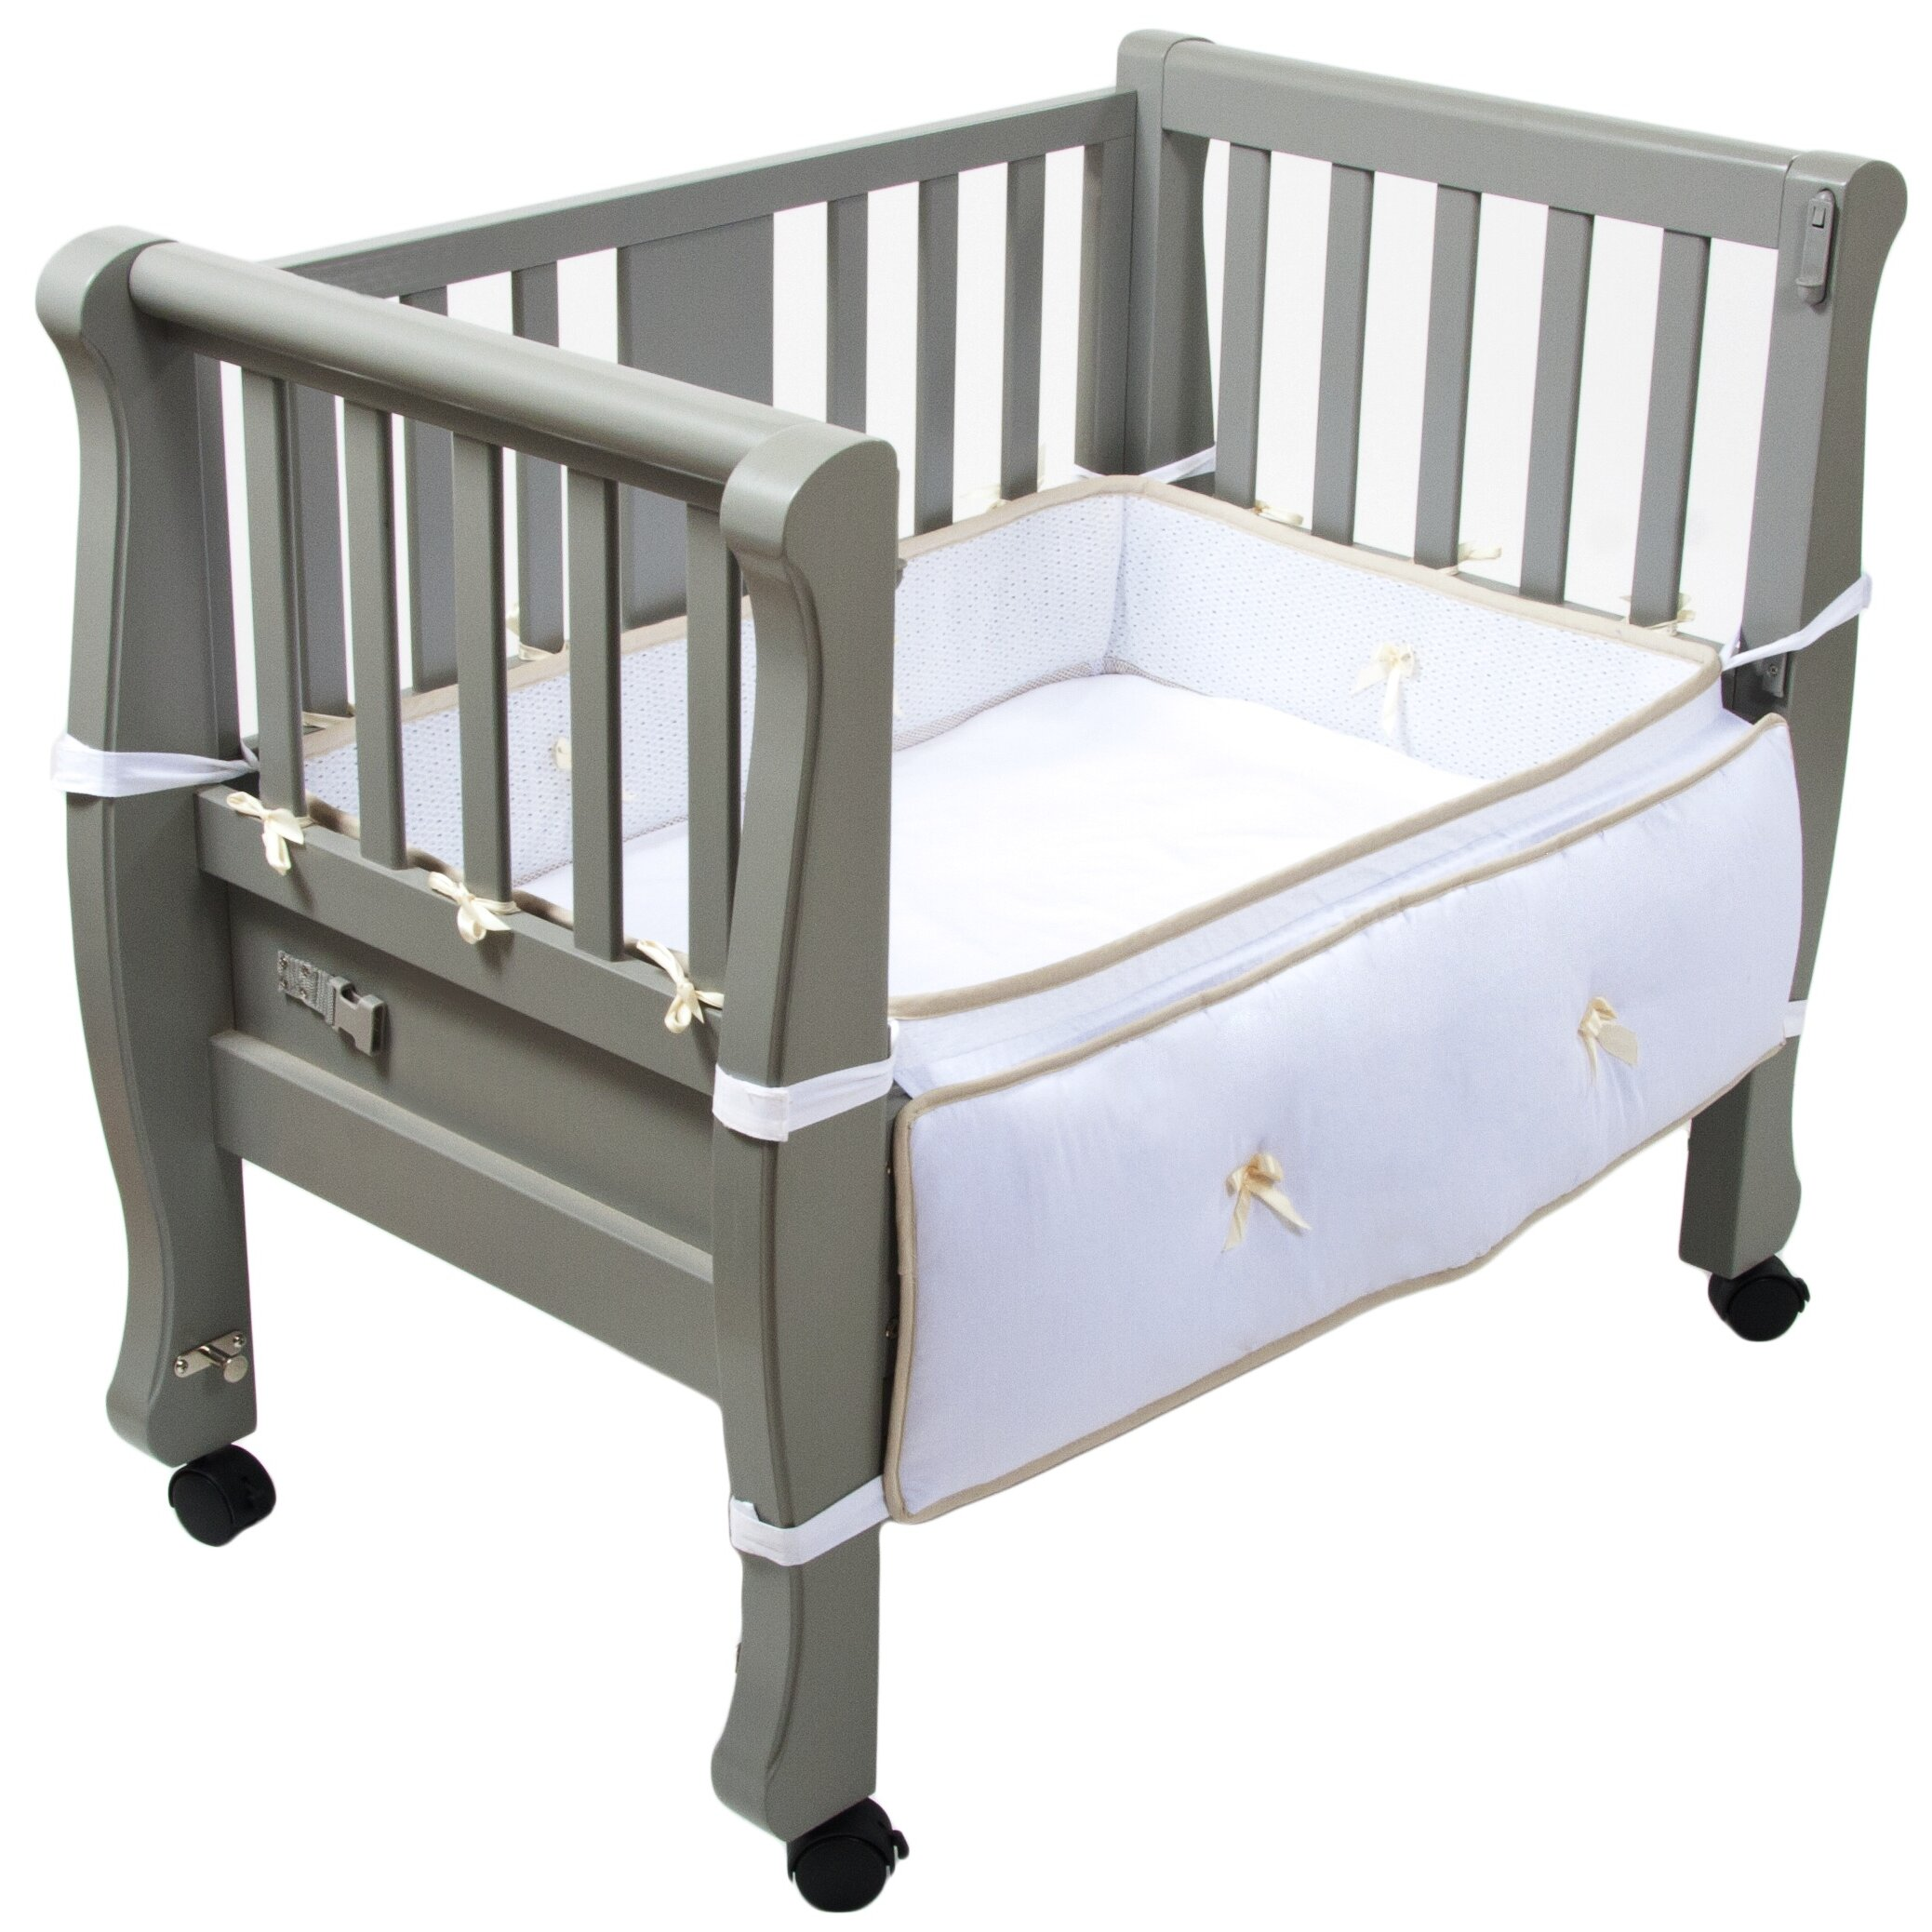 Baby bed extension co sleeper - Arm S Reach Sleigh Bed Co Sleeper Bassinet